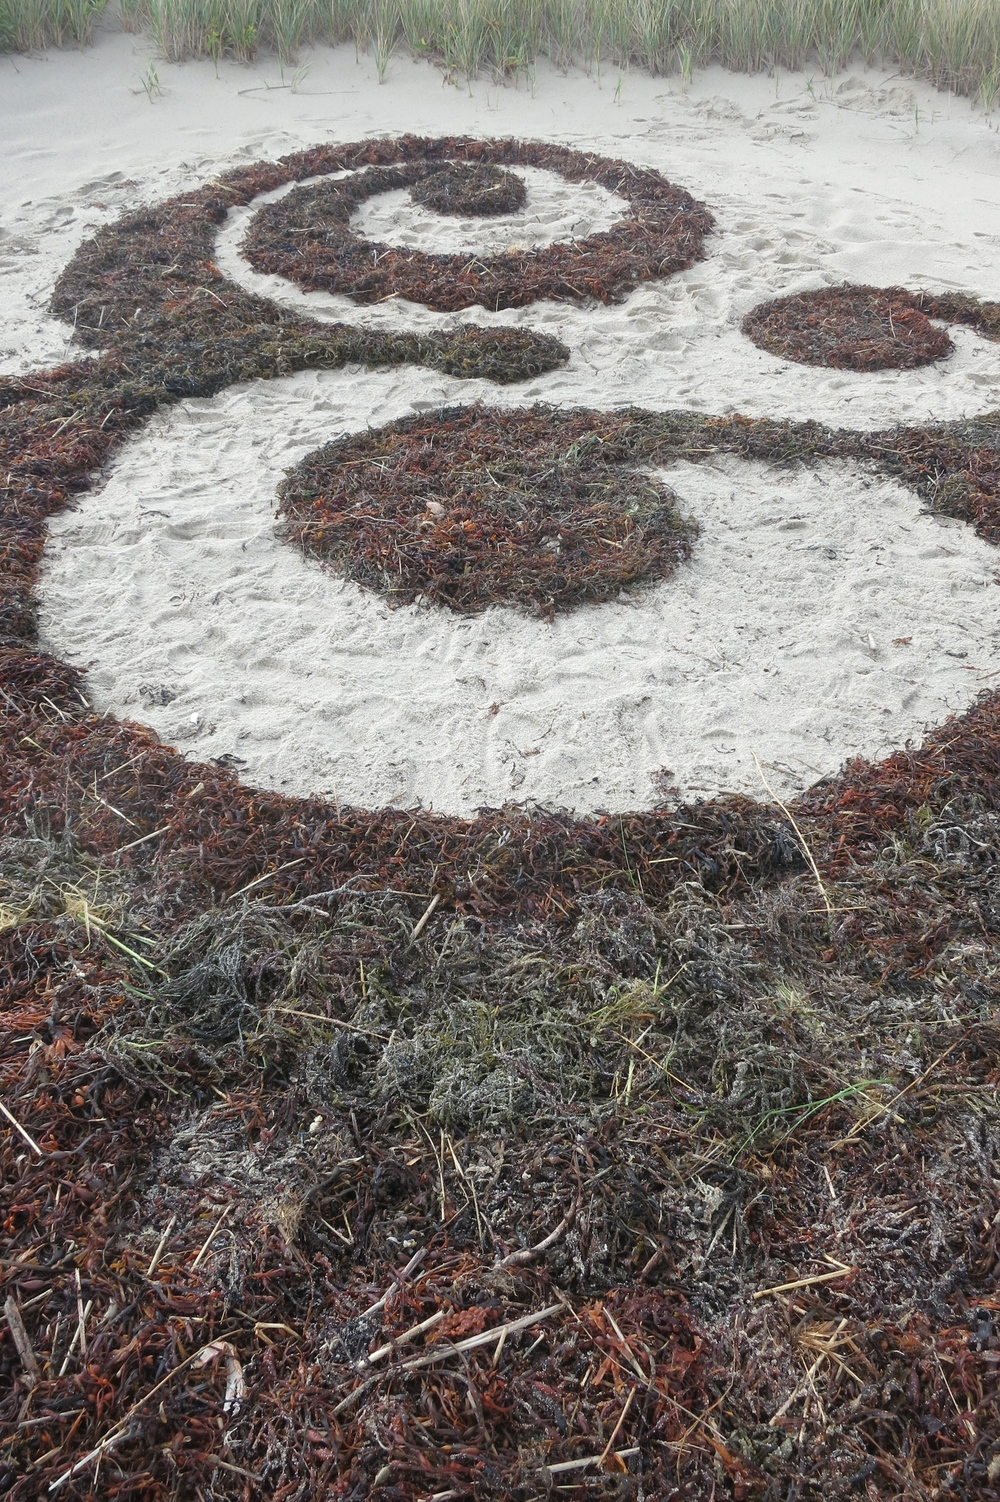 2014 / Ampersand / Materials: seaweed / Size: 20 feet high by 15 feet wide